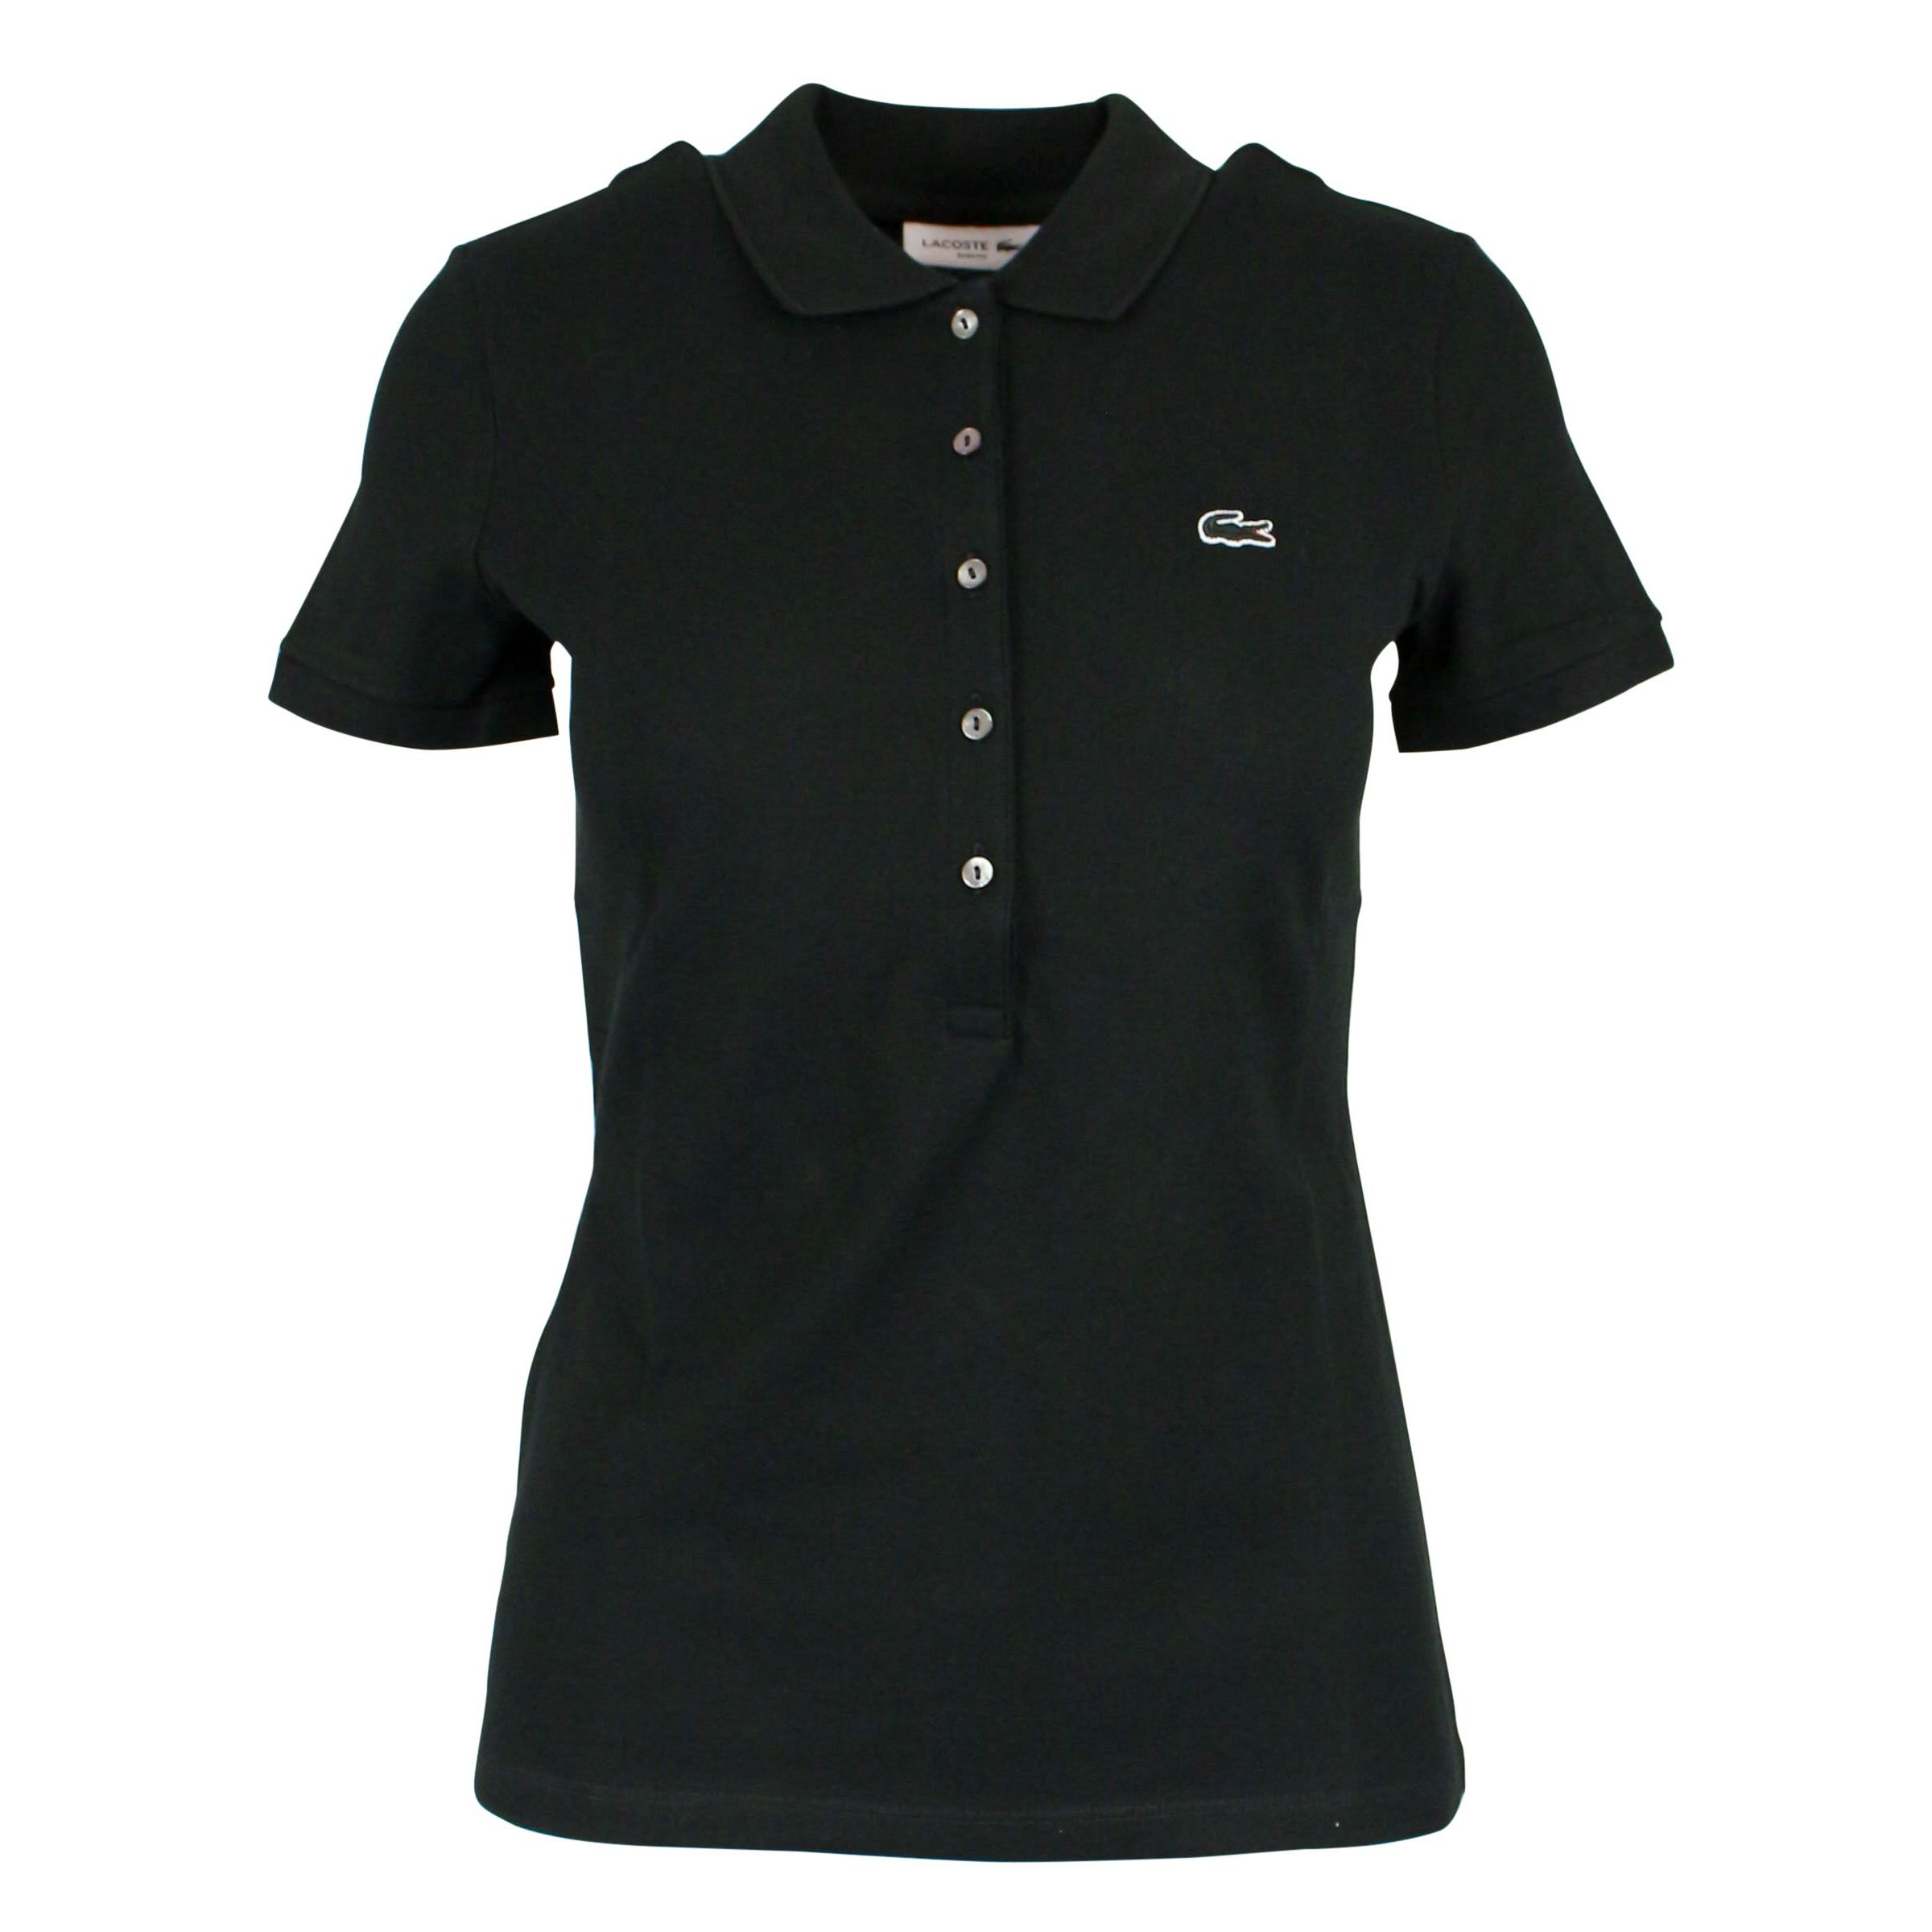 9843ca17864 Lacoste Polo Shirts 5 Buttons - gaurani.almightywind.info